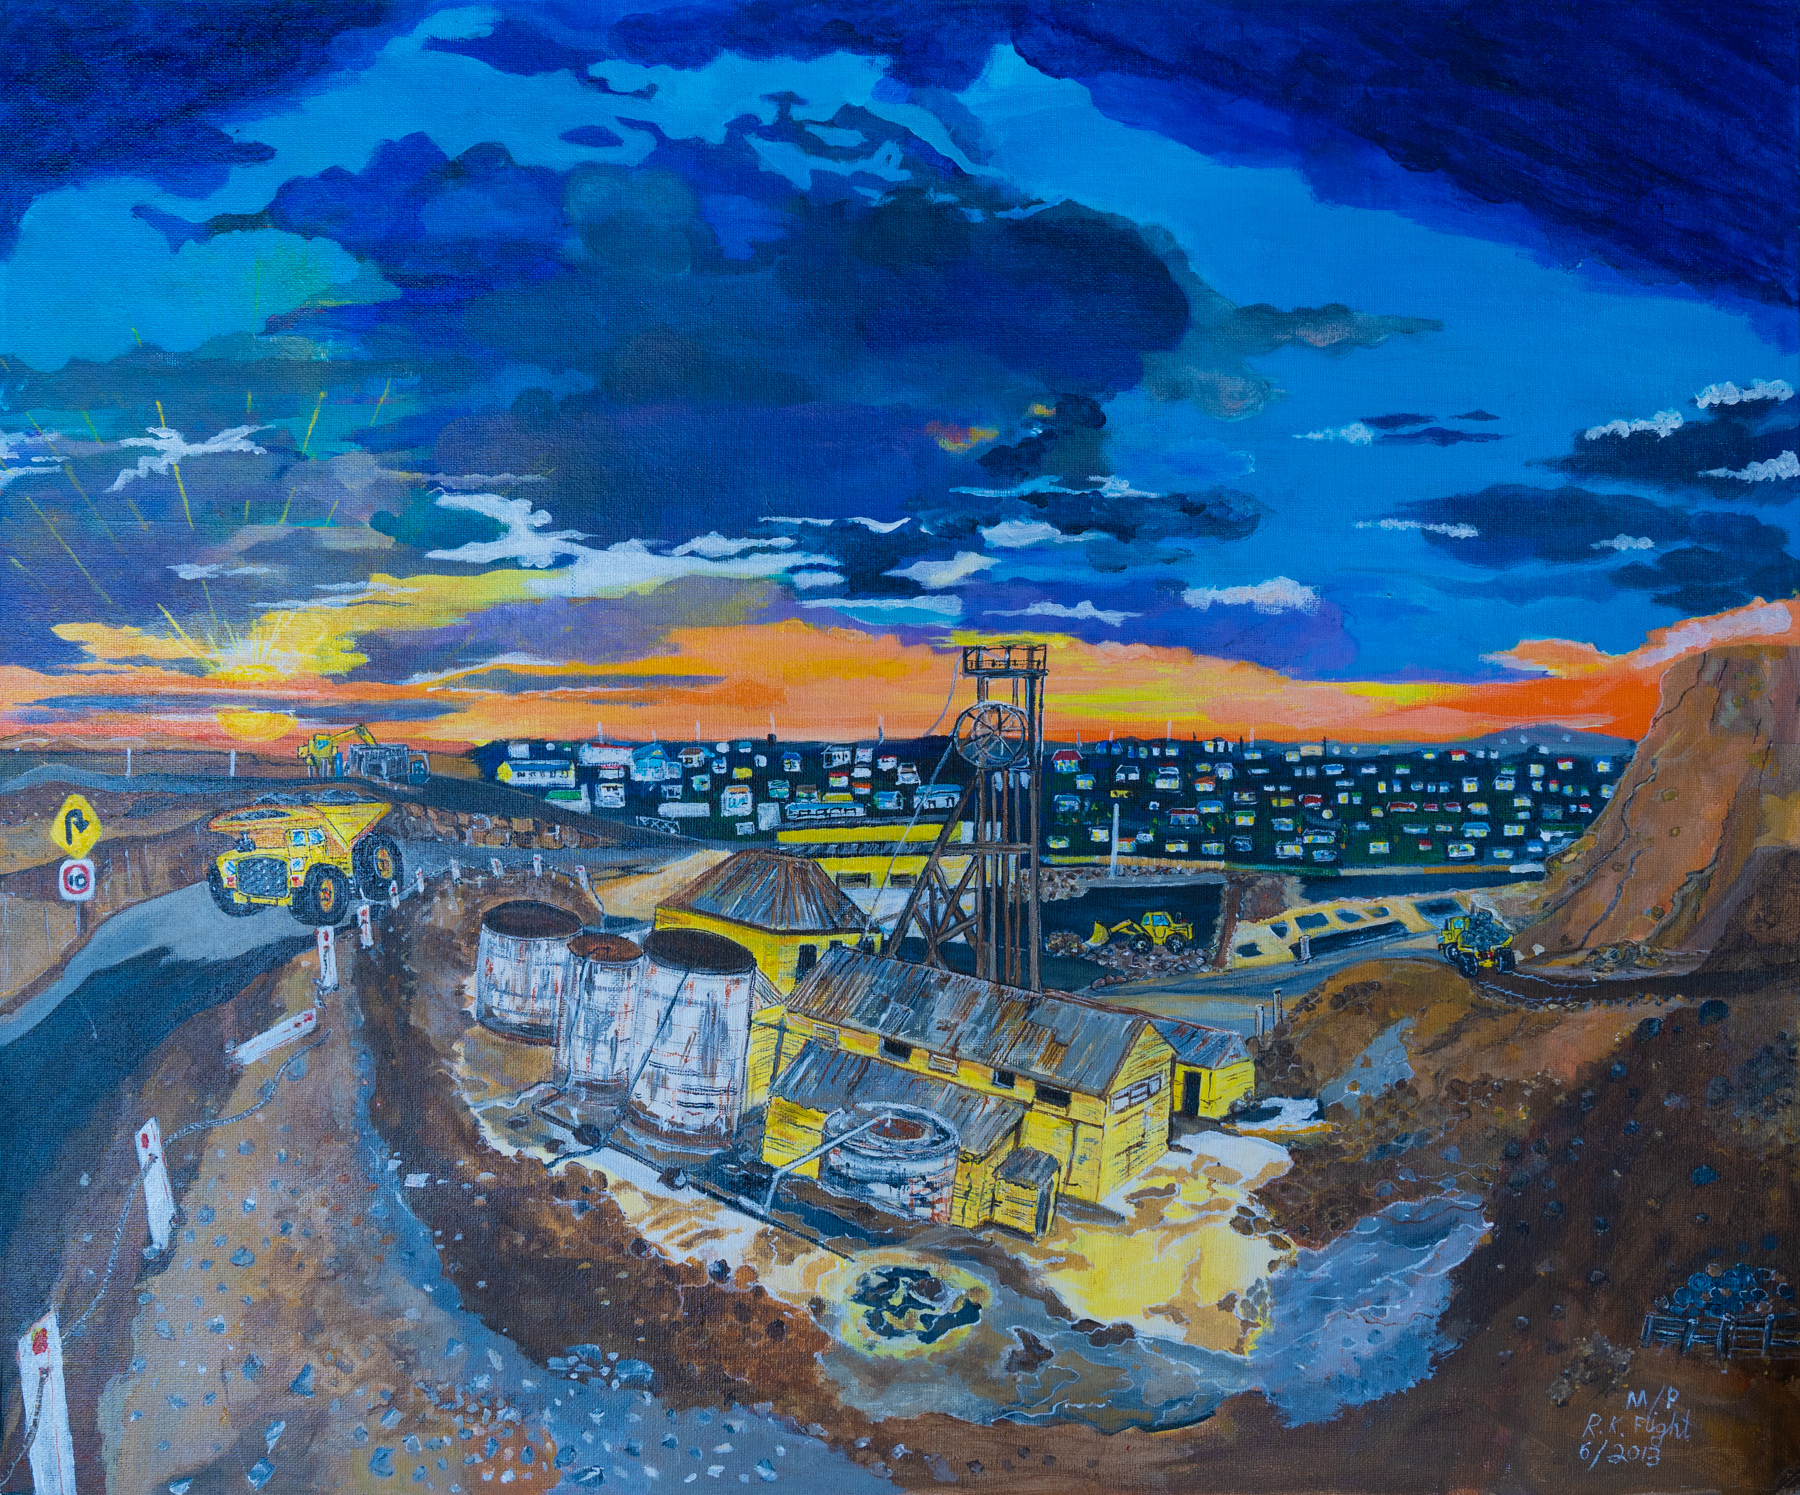 Painting showing the mine at Broken Hill under a dark blue sky